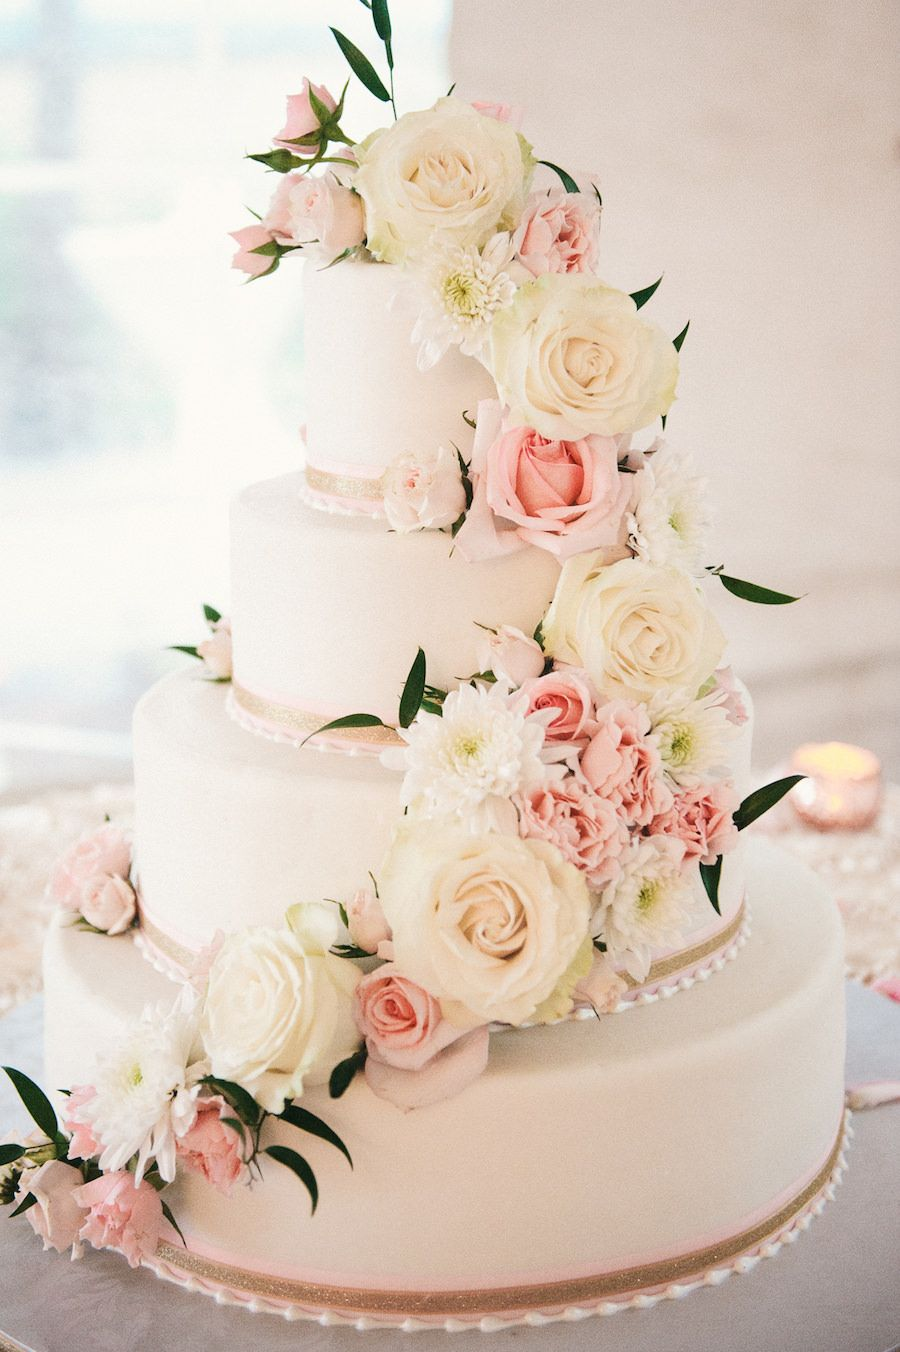 Travel inspired outdoor sarasota wedding mmtb wedding cakes four tier round white and blush pink wedding cake with fresh flower roses and pearl decoration on specialty linen mightylinksfo